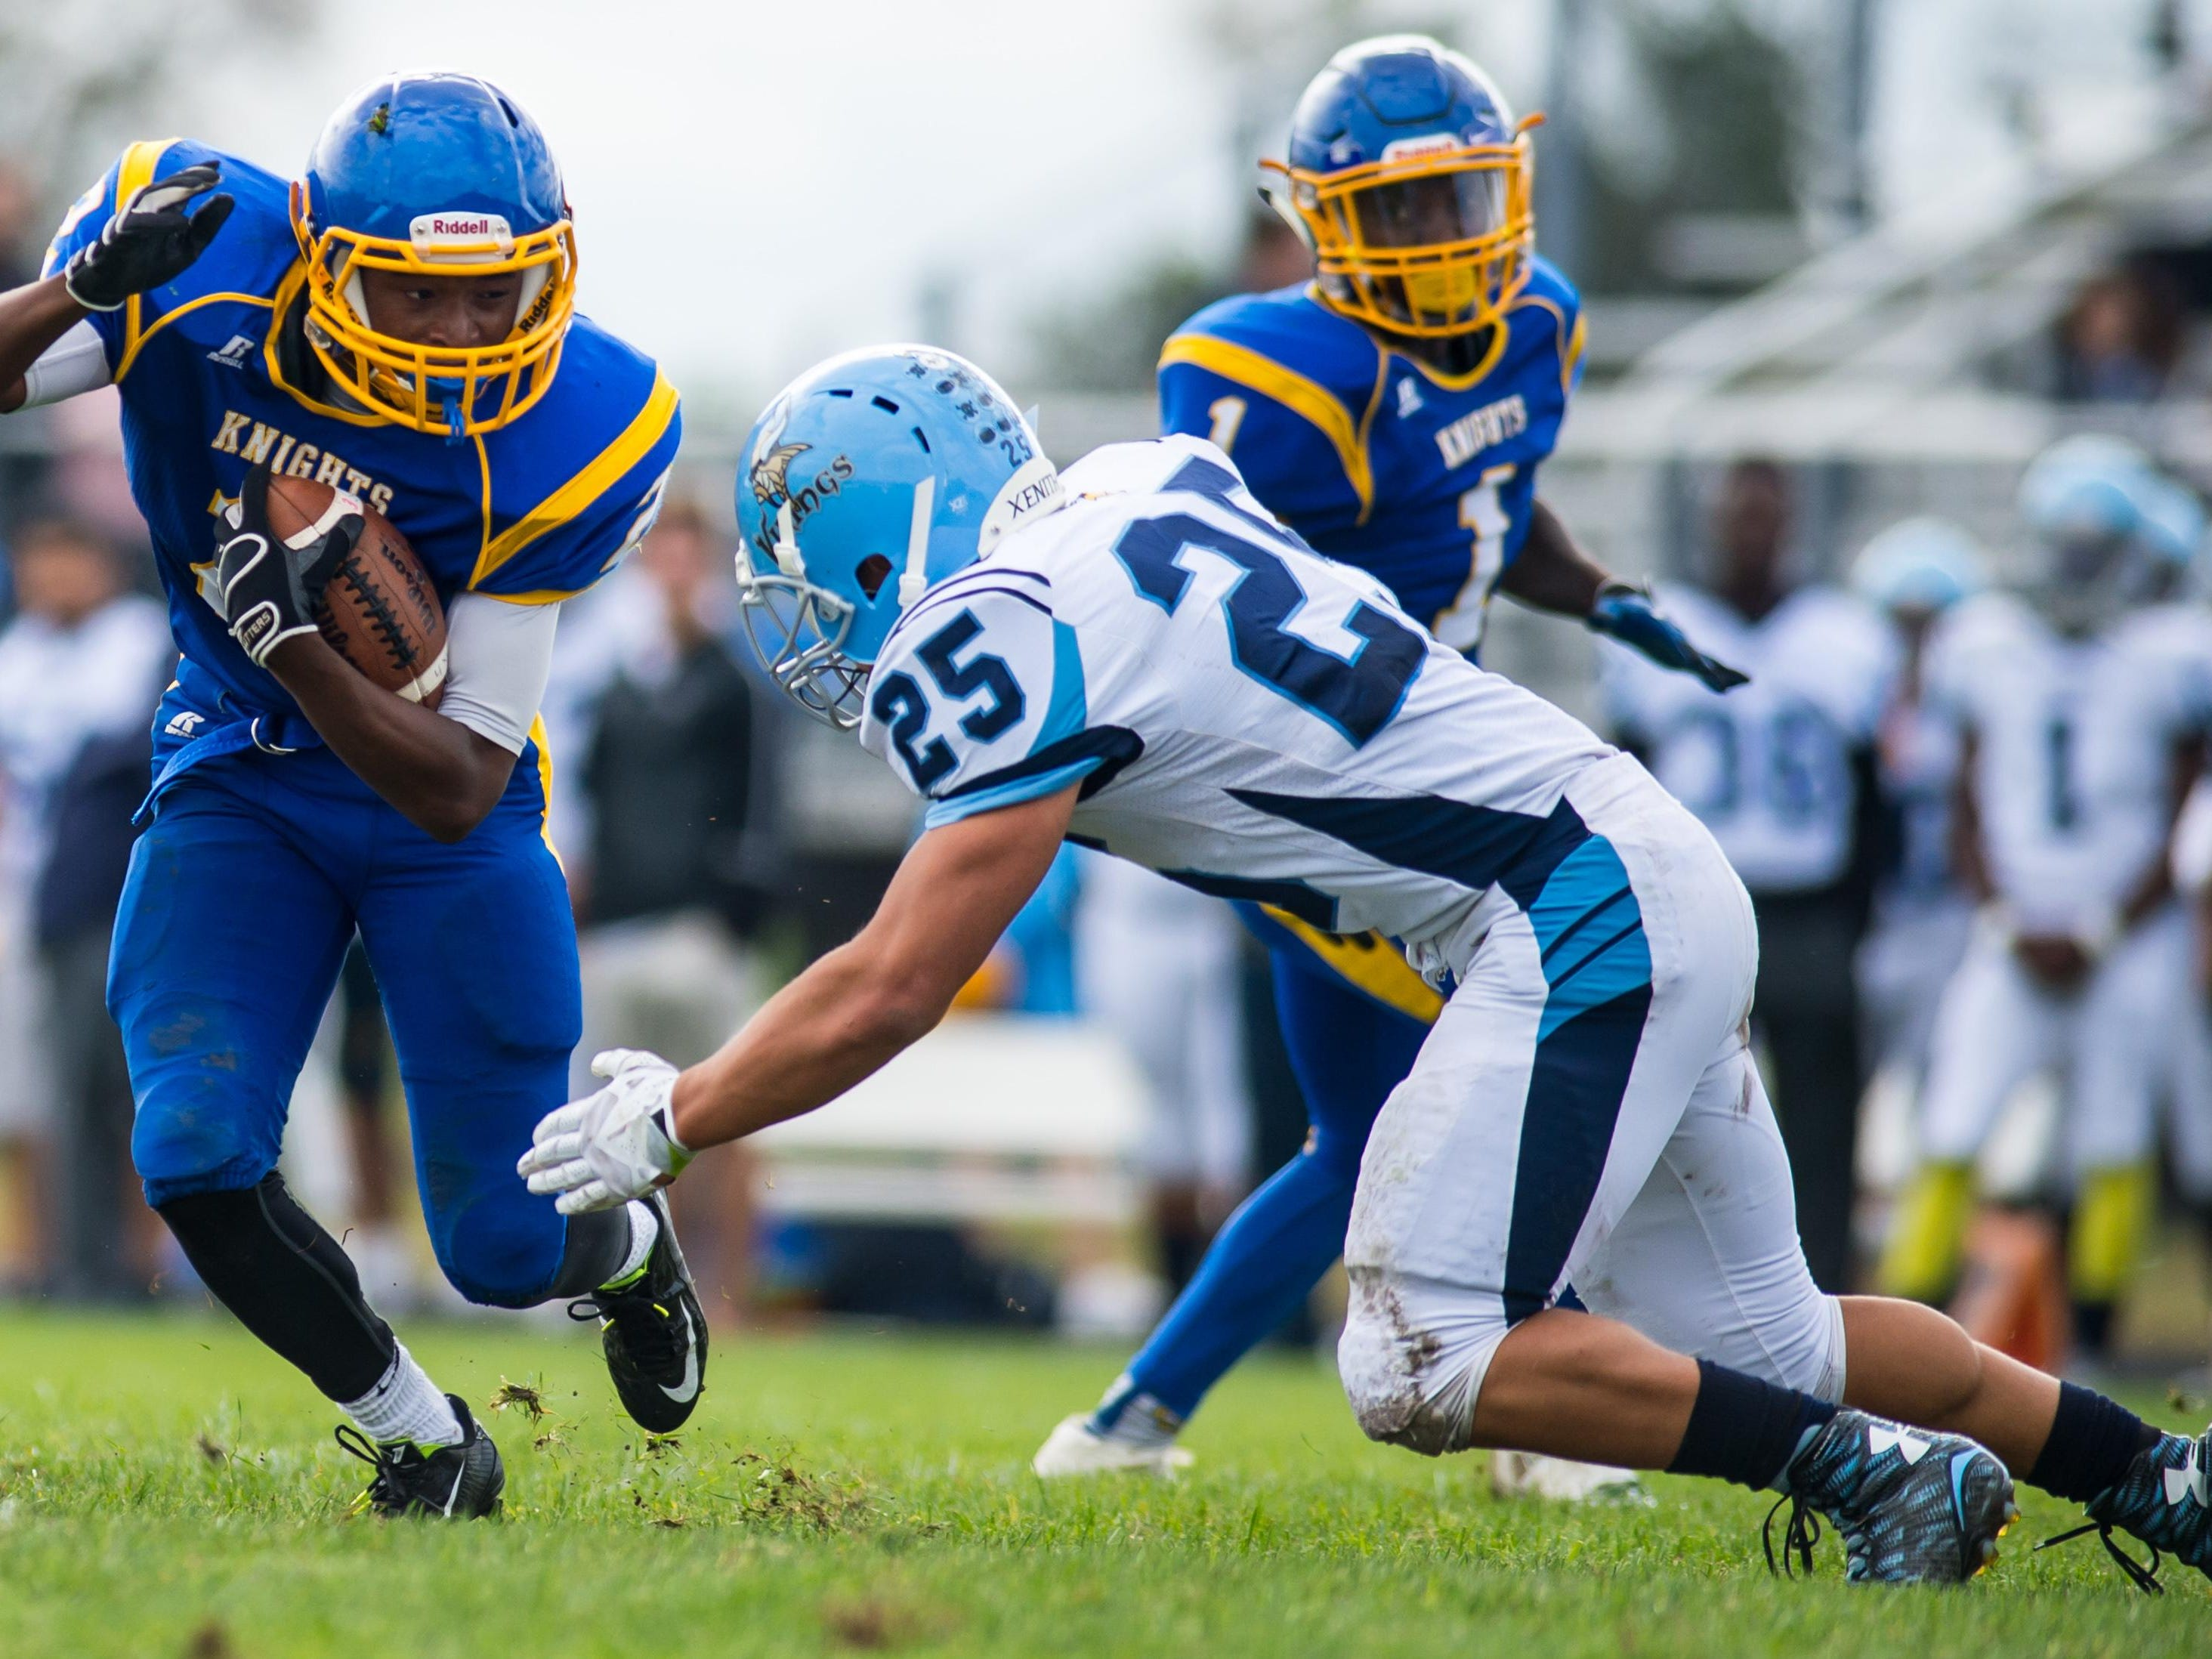 Sussex Central running back Kendrick Nocks (2) rushes against Cape Henlopen at Sussex Central.